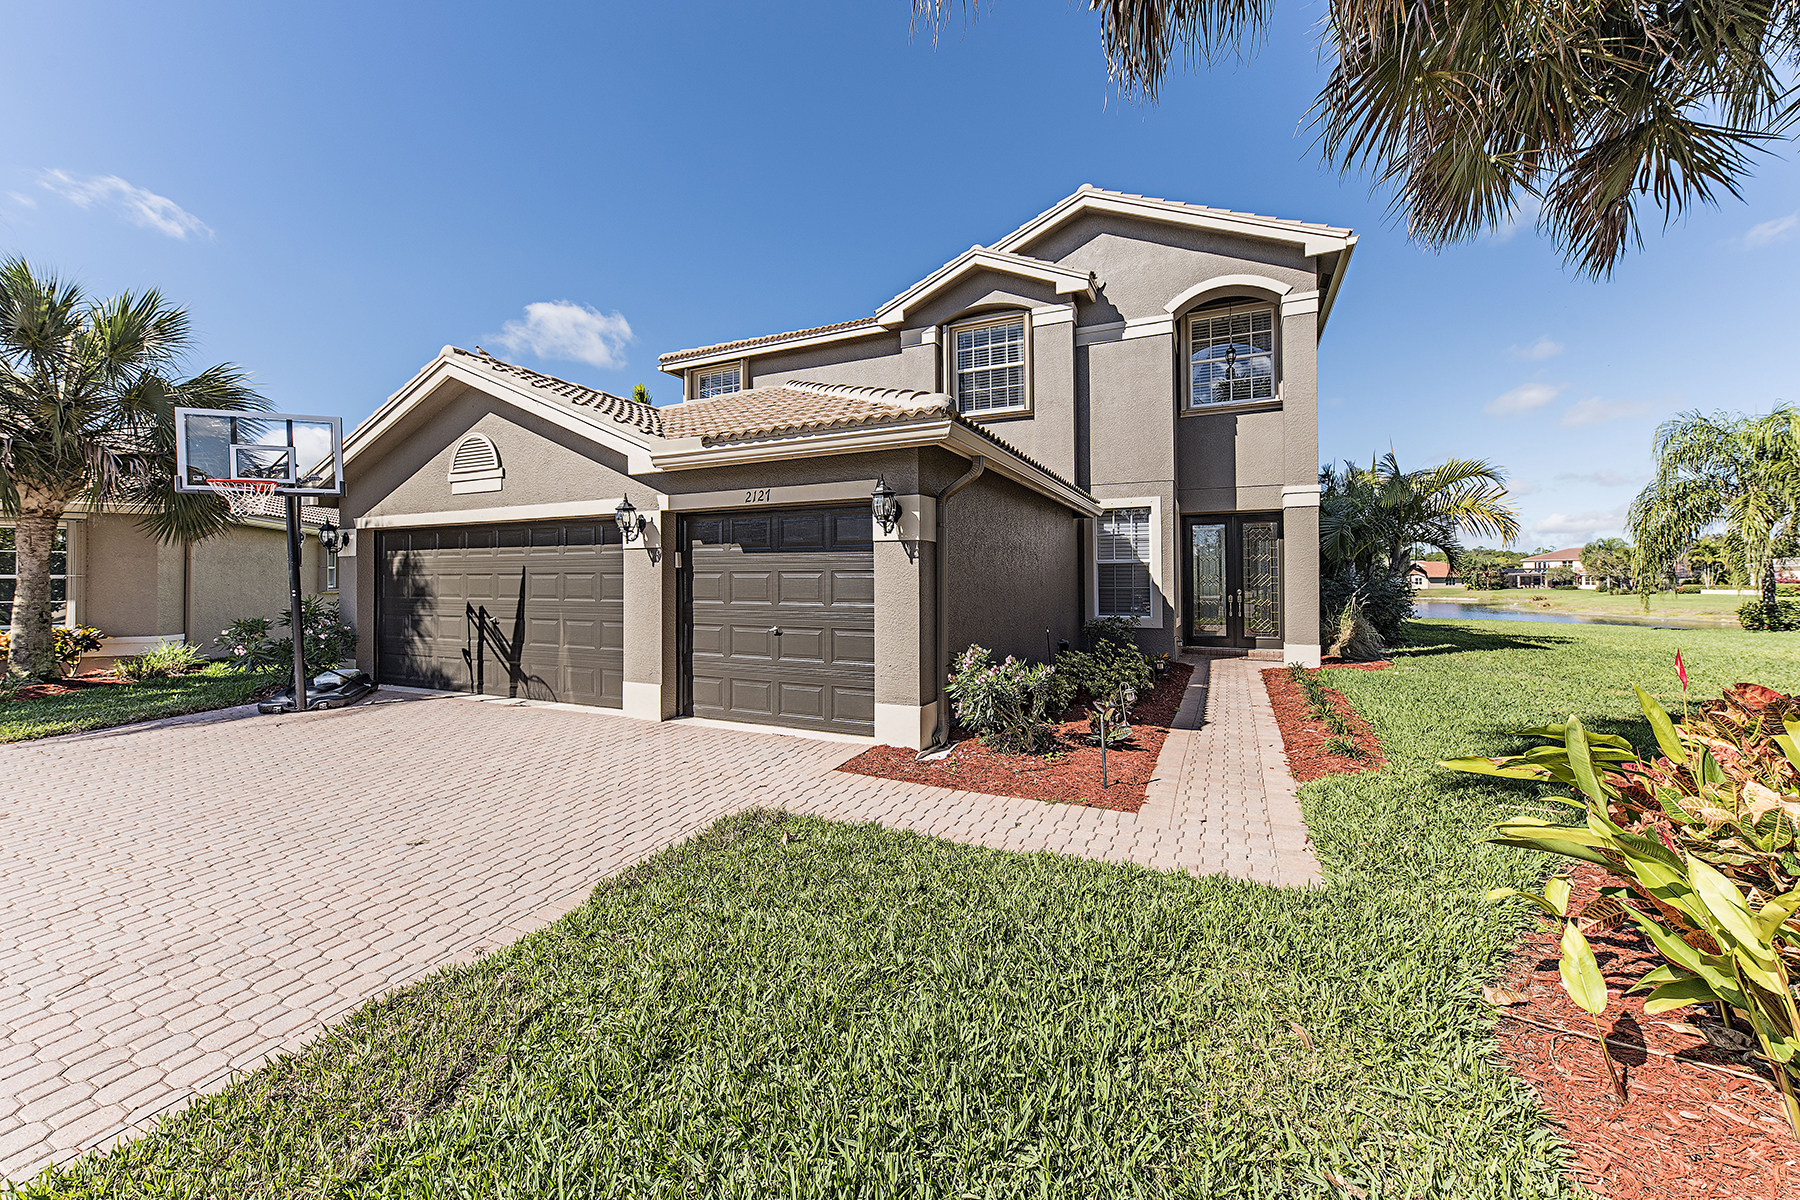 Single Family Home for Sale at Naples 2127 Khasia Pt Naples, Florida, 34119 United States